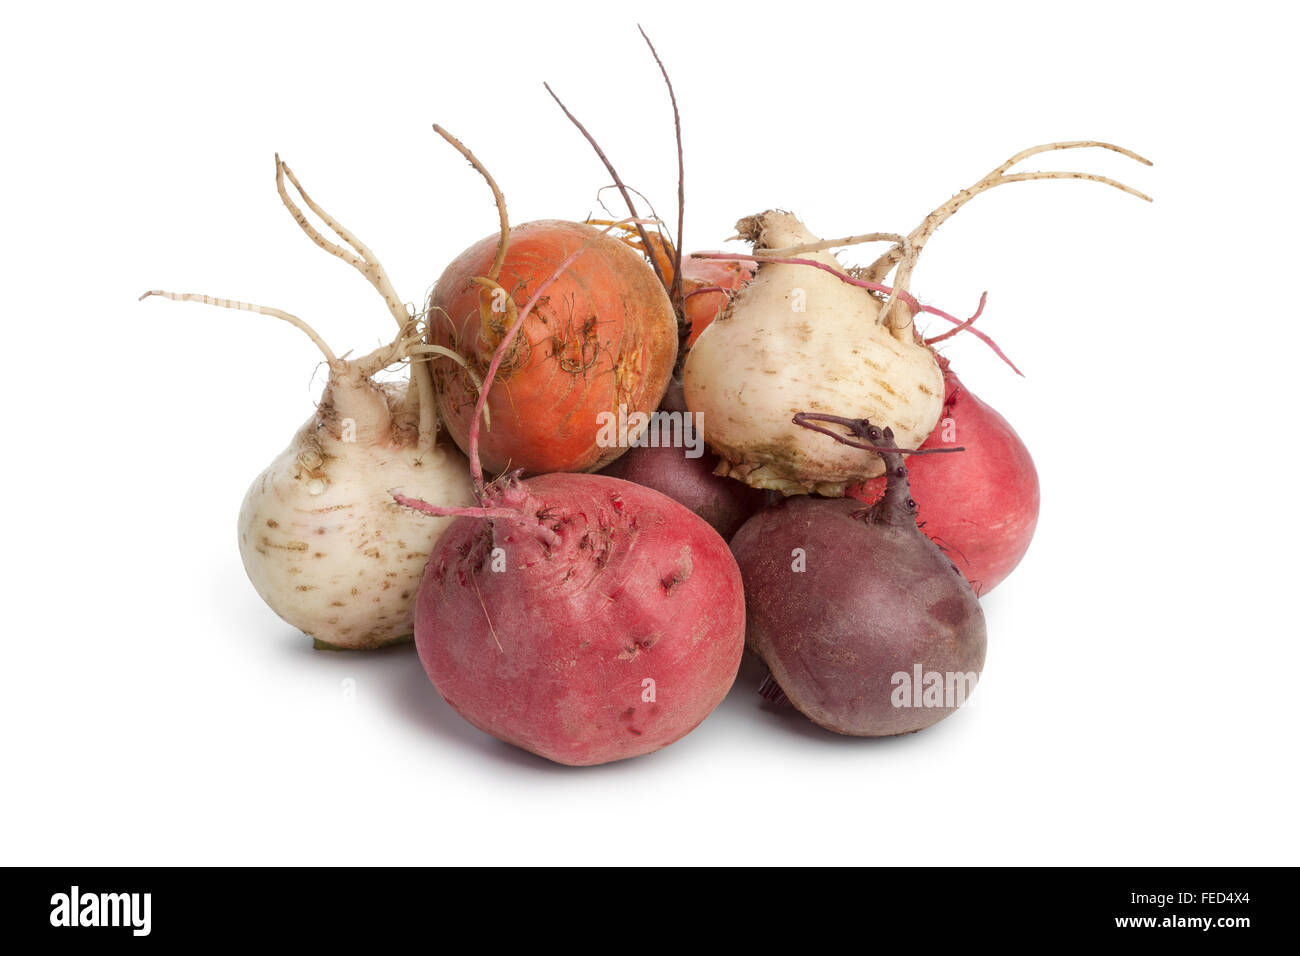 Fresh mixed heirloom color beets on white background - Stock Image